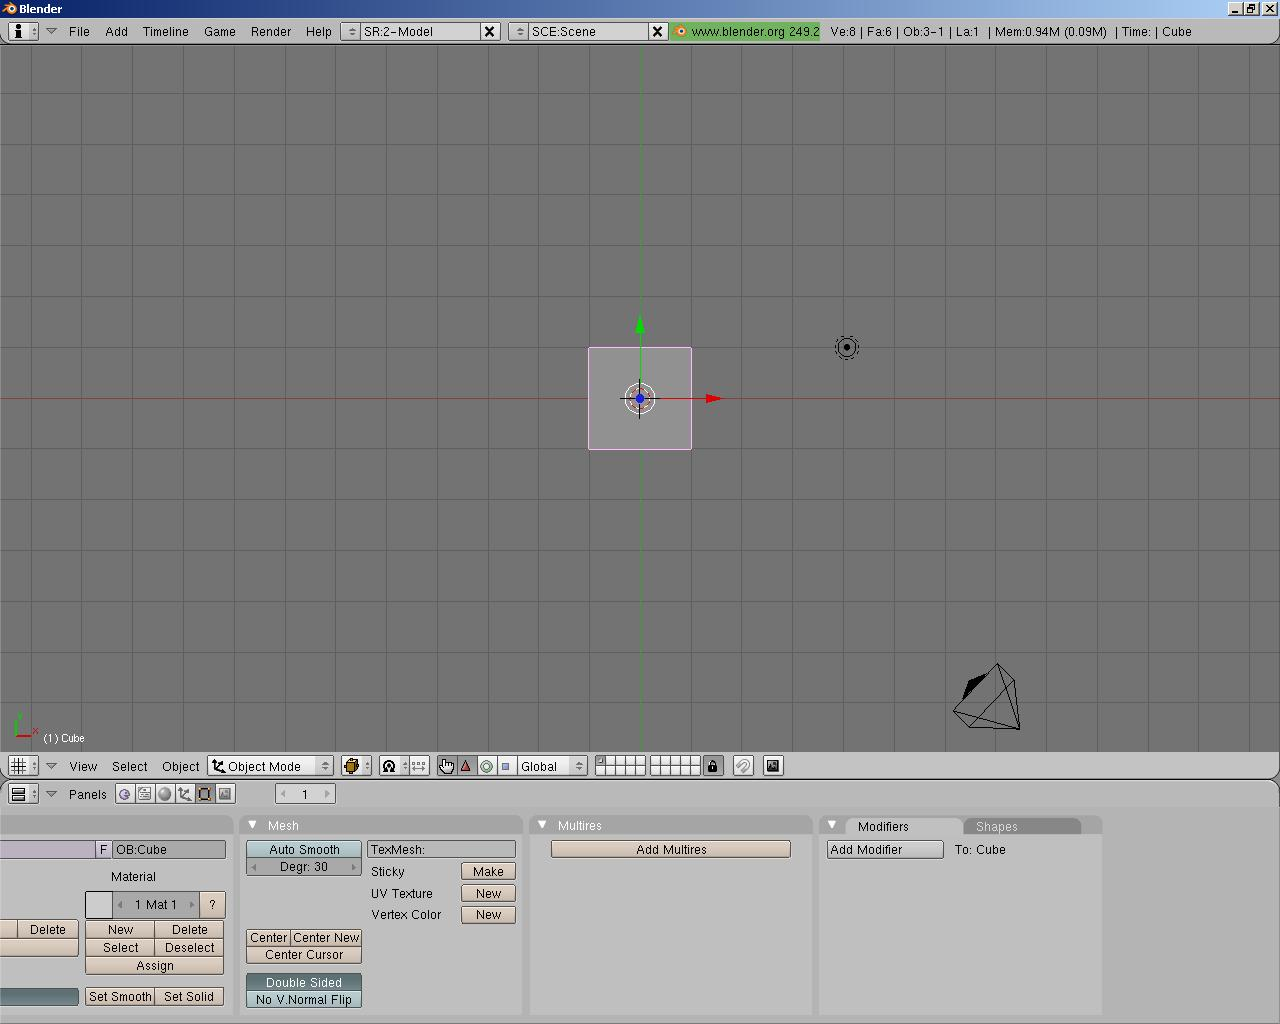 Simple blender tutorials beginners modelling tutorial part 1 open blender to the default scene baditri Image collections